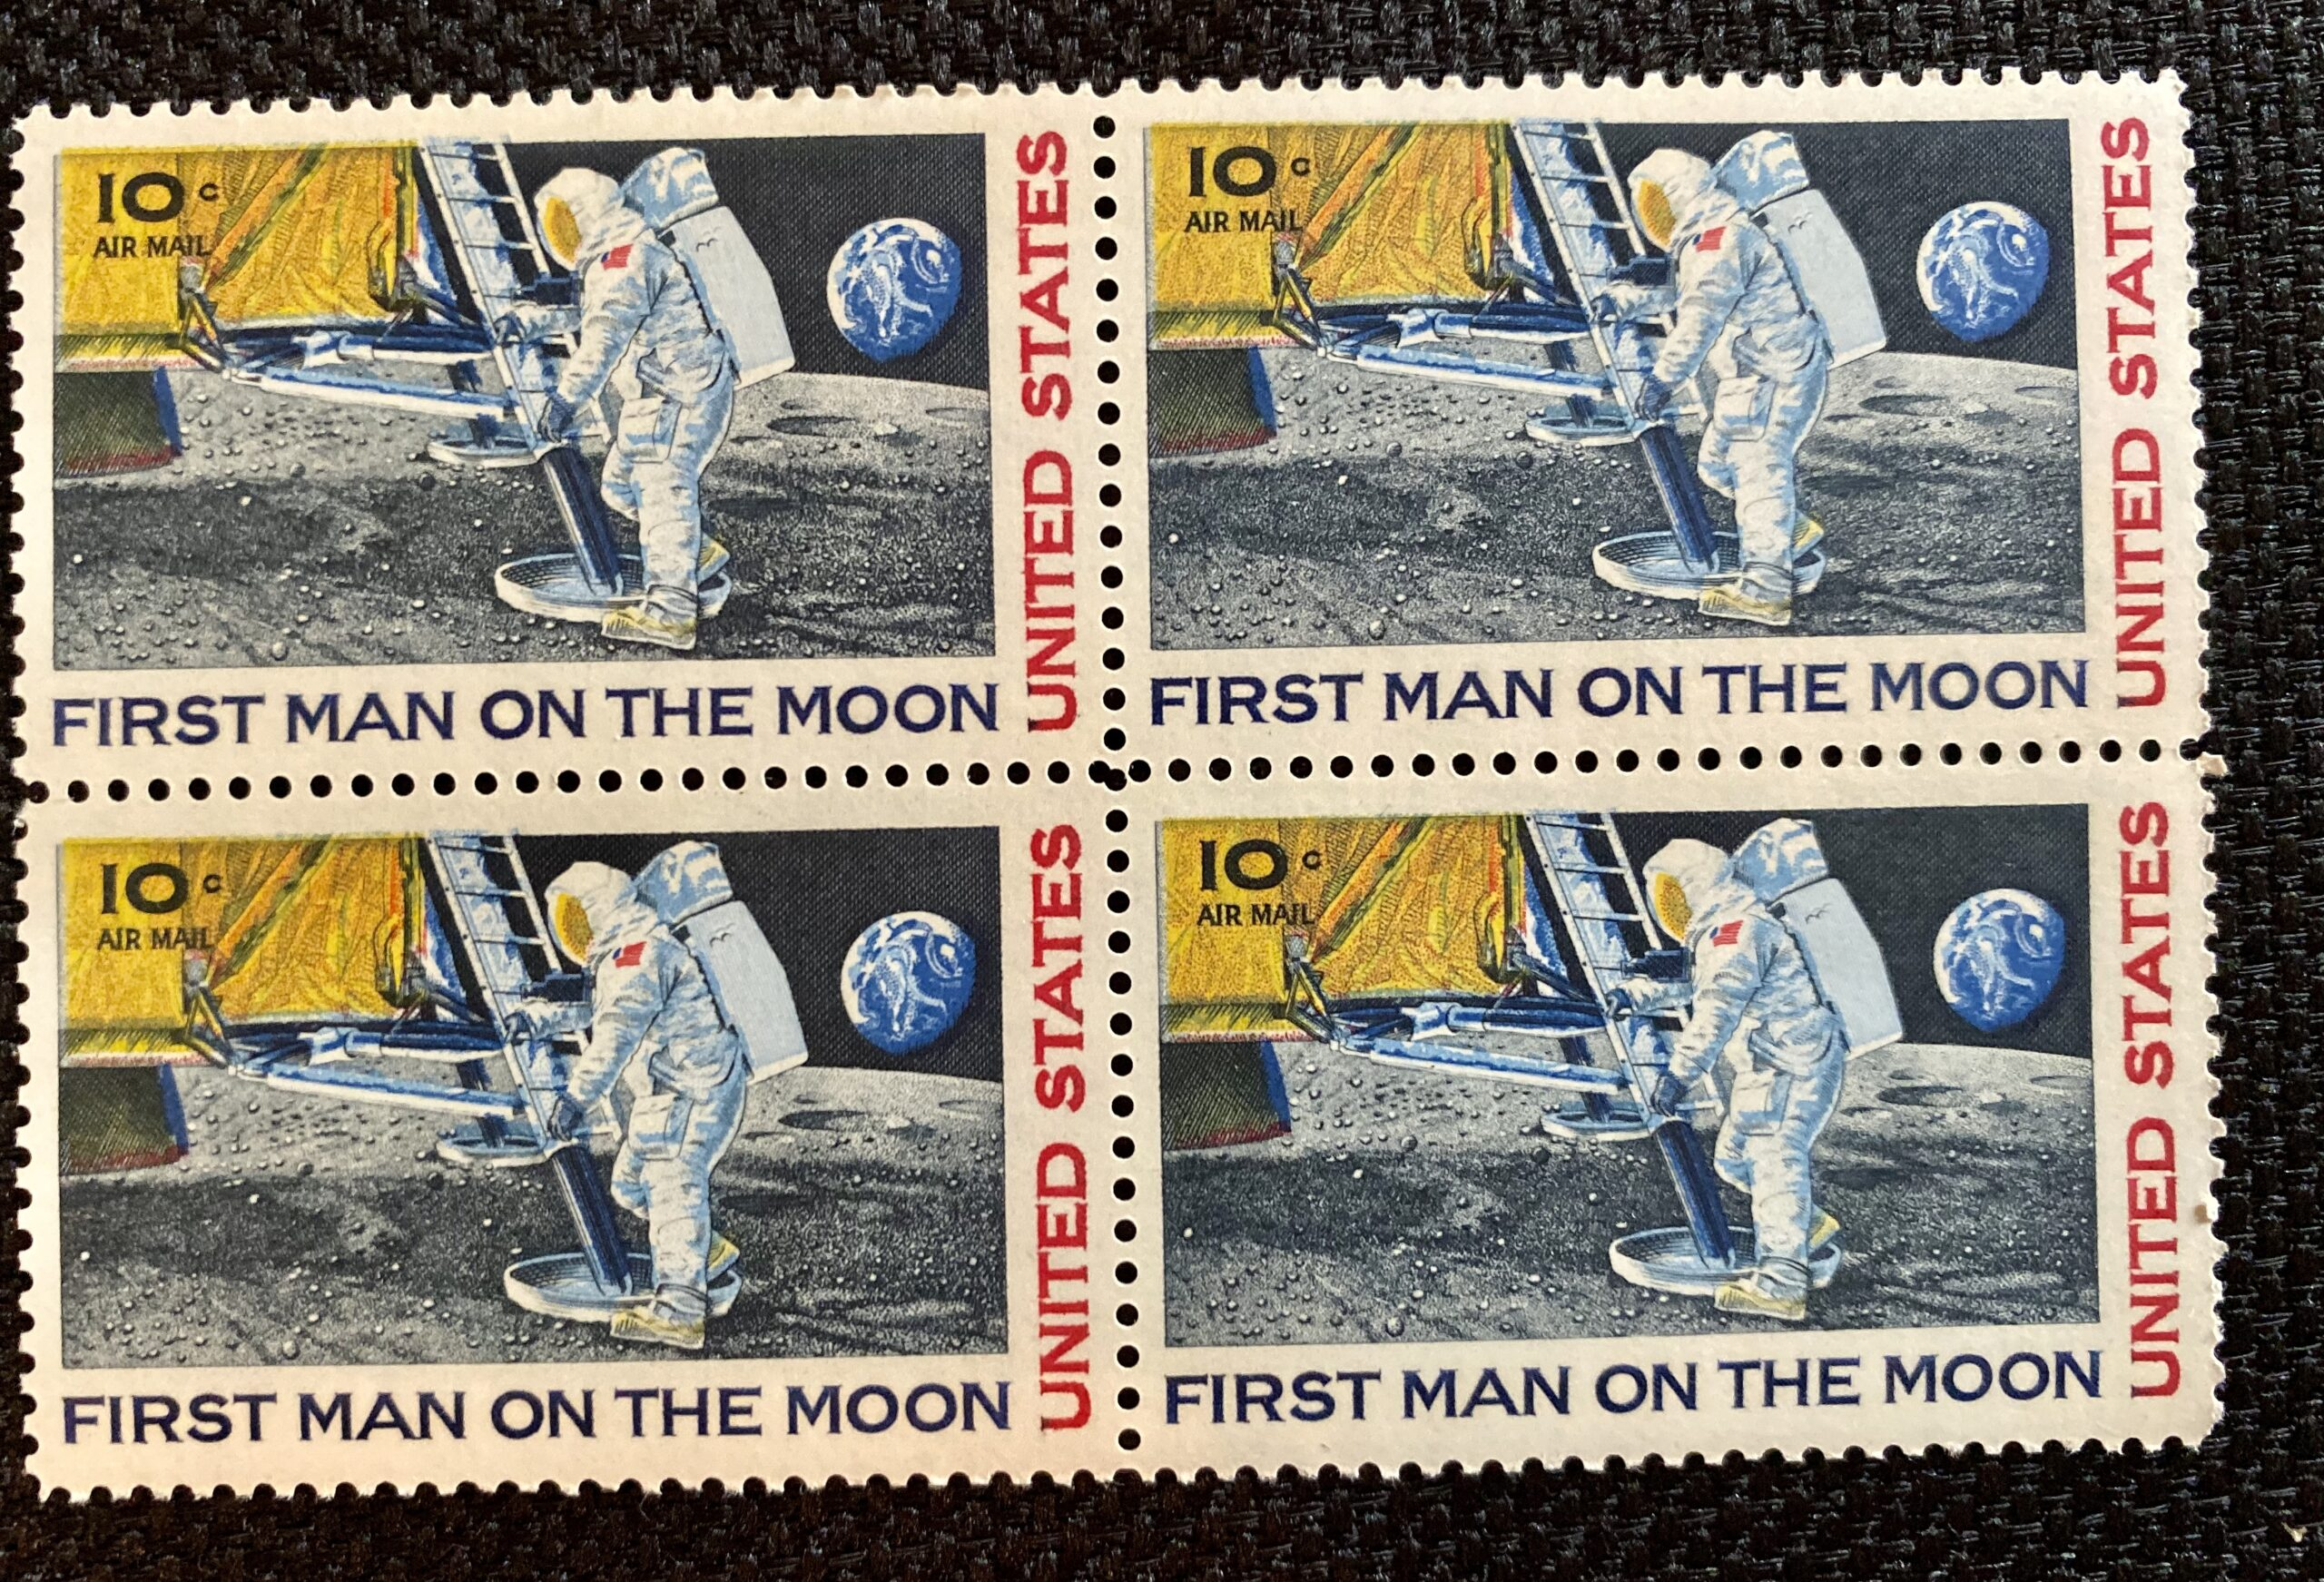 Vintage First Man On The Moon ** 1969 Apollo 11 ** US Postage Stamps with Buzz Aldrin Autographed Photo